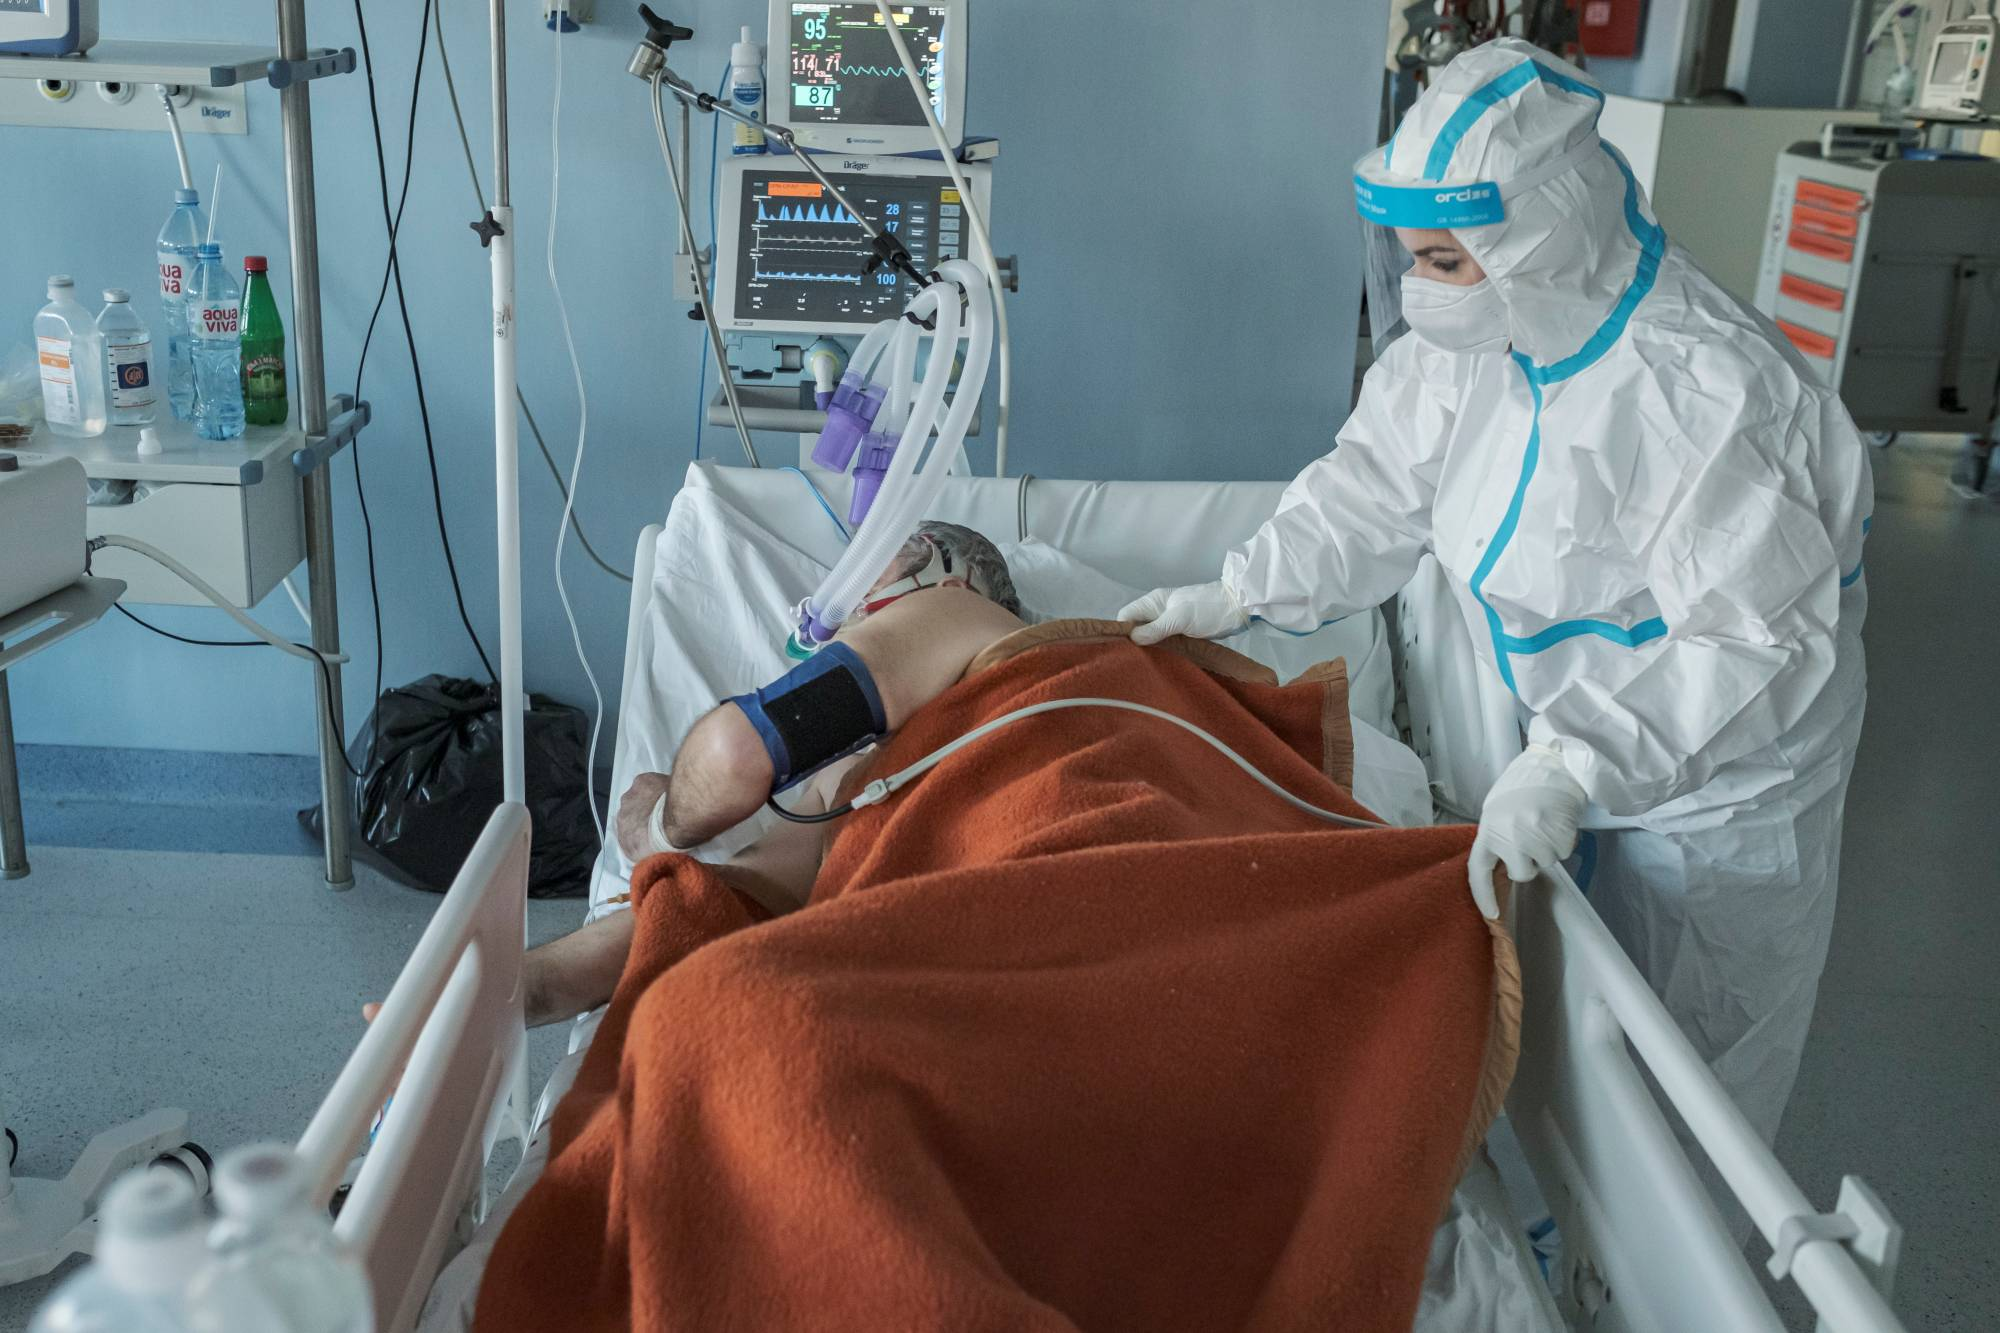 A medical worker treats a patient suffering from COVID-19 at the Clinical Hospital Center in Nis, Serbia, on Wednesday.  | REUTERS